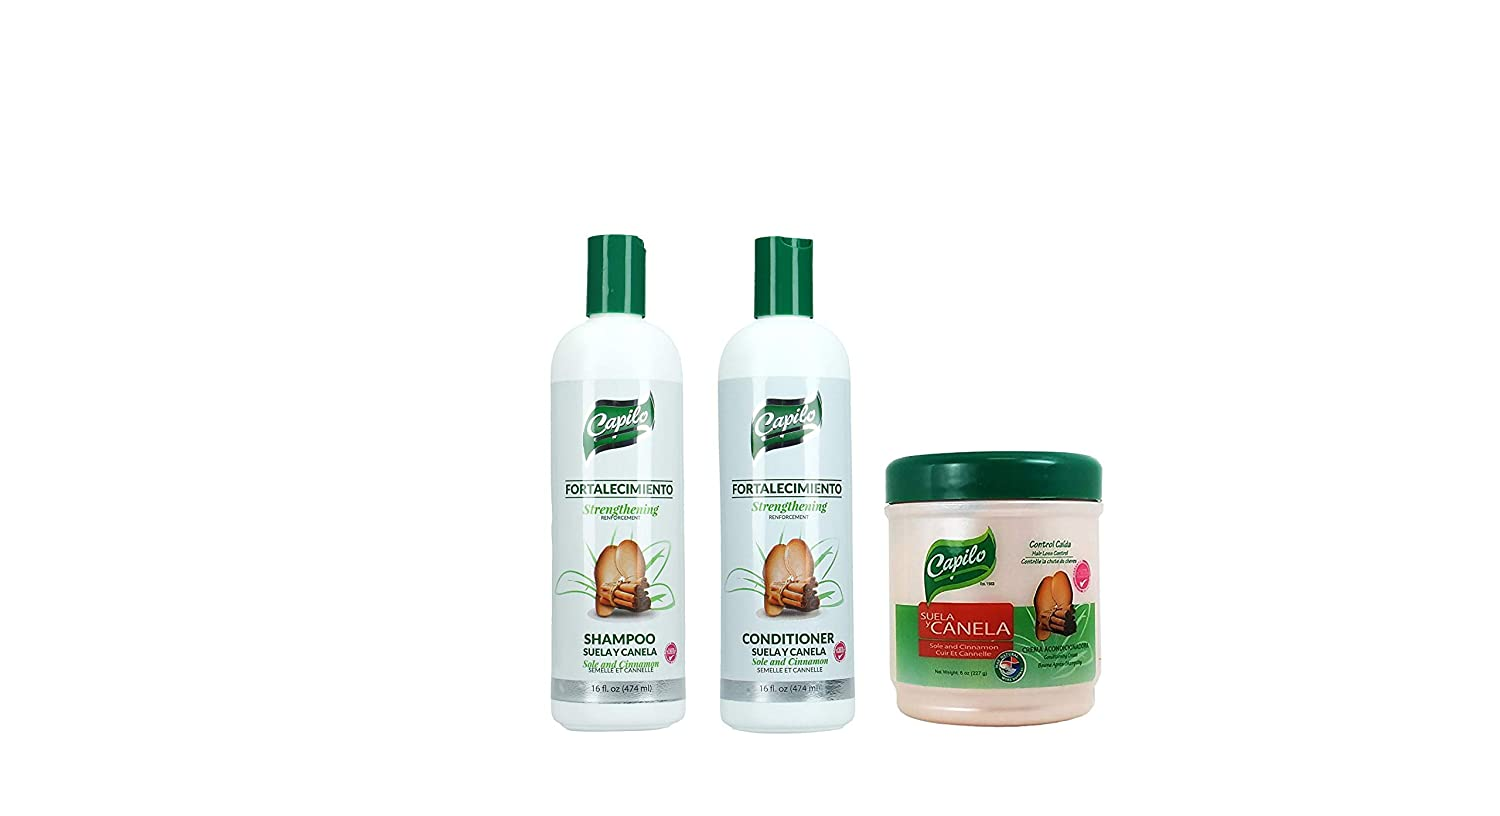 Suela Y Canela 16 Oz, Conditioner, Rinse and Shampoo!!! by laboratorios capilo